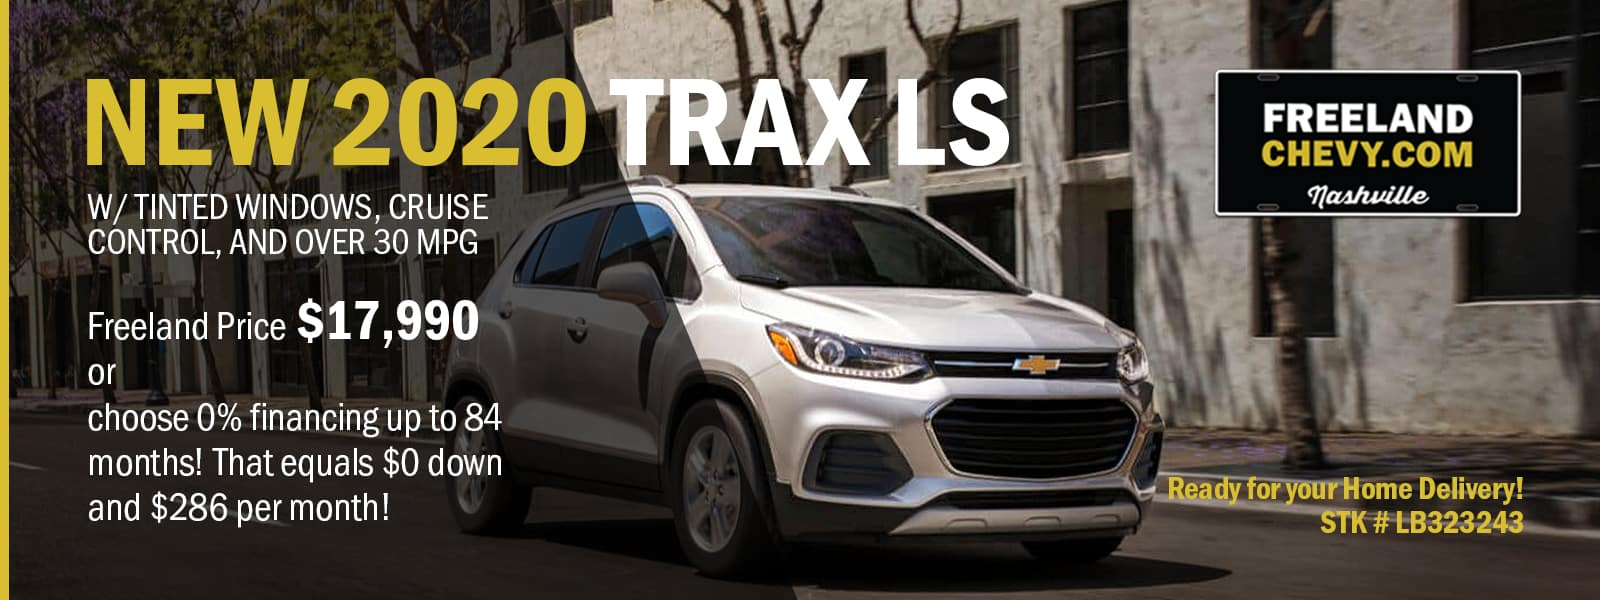 2020 Trax Special